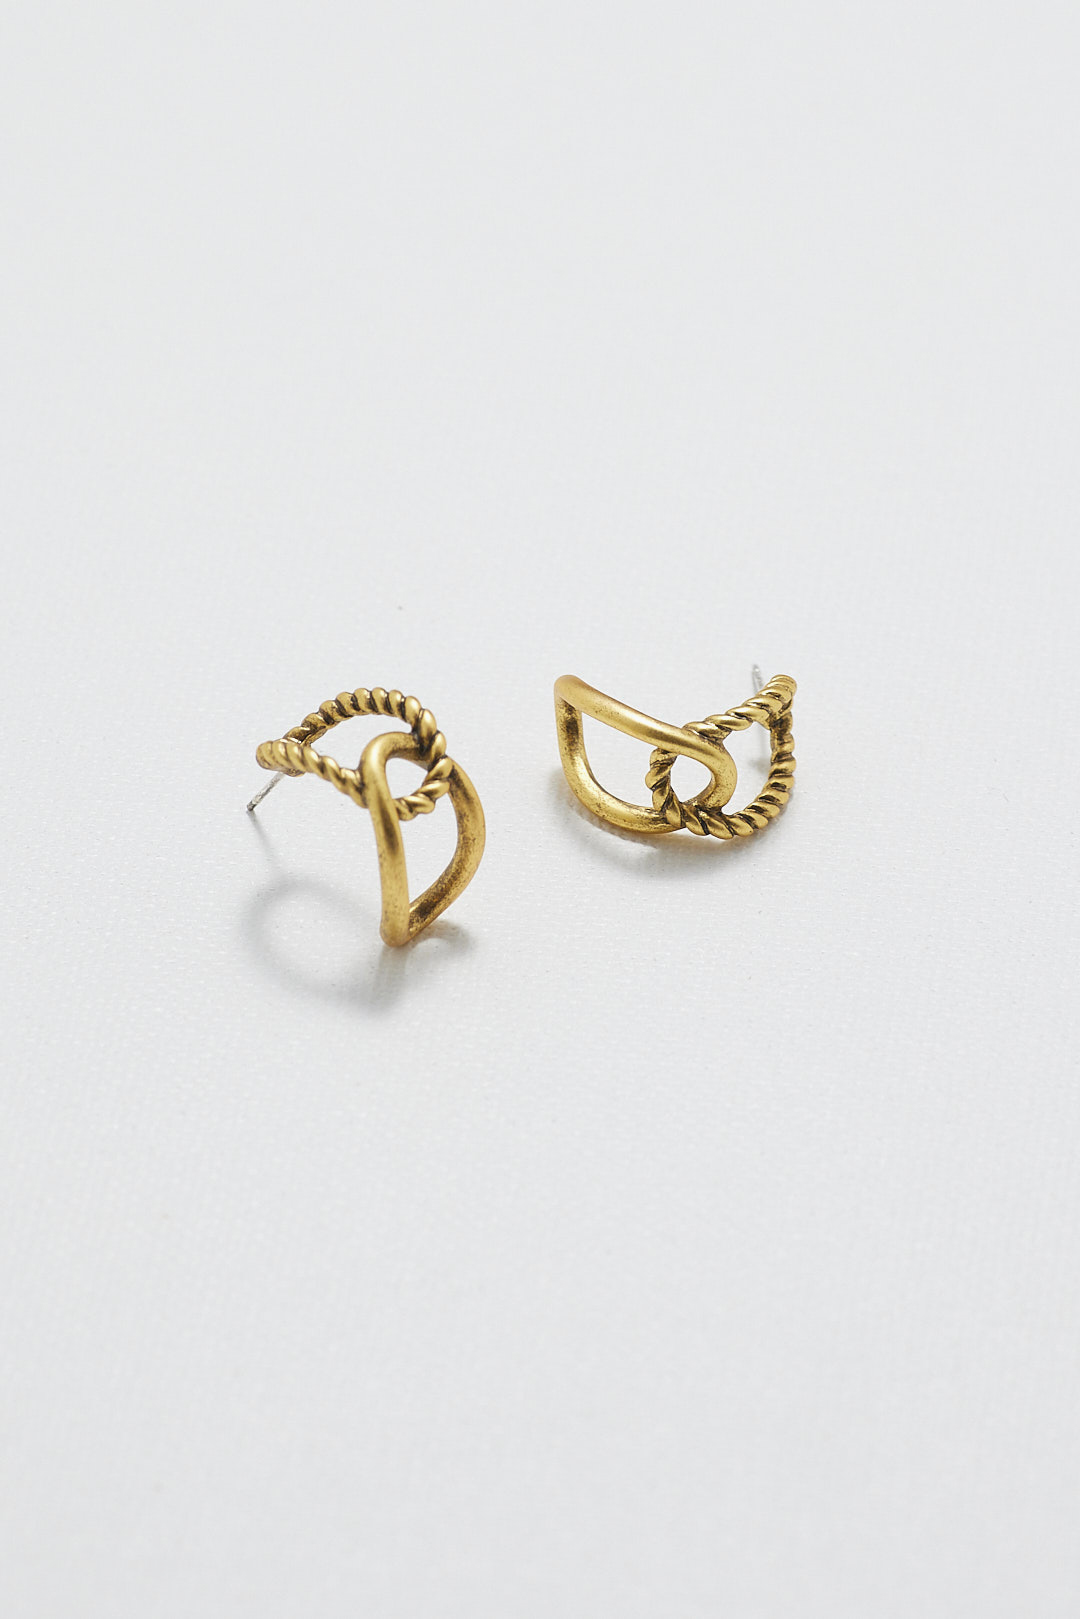 Adalee Interlock Earrings